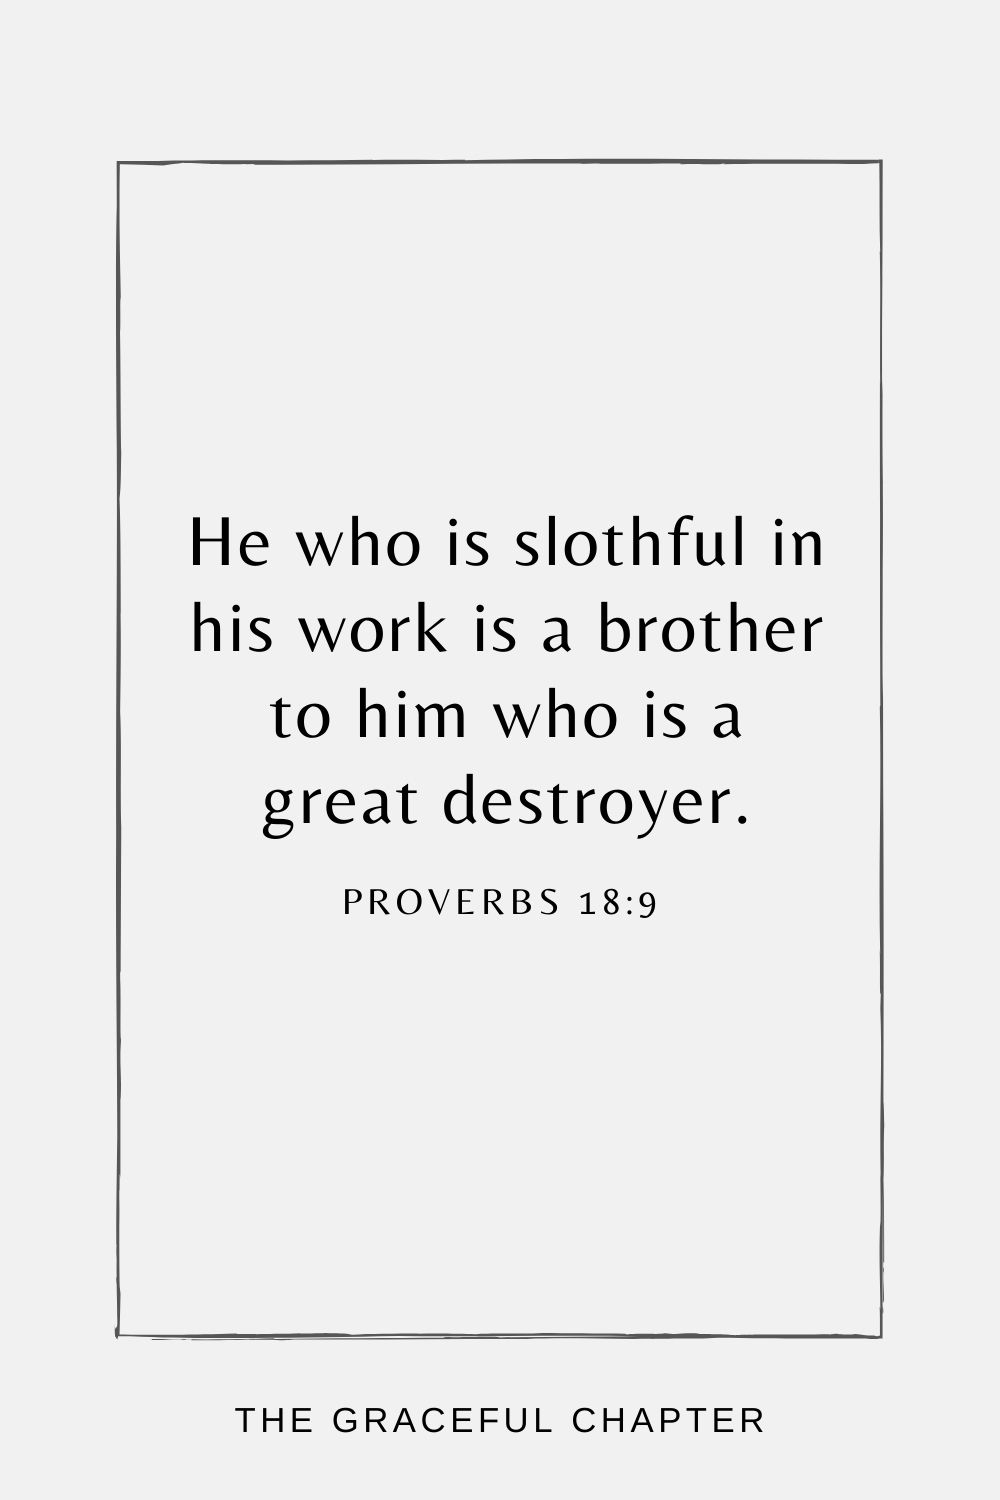 He who is slothful in his work is a brother to him who is a great destroyer. Proverbs 18:9